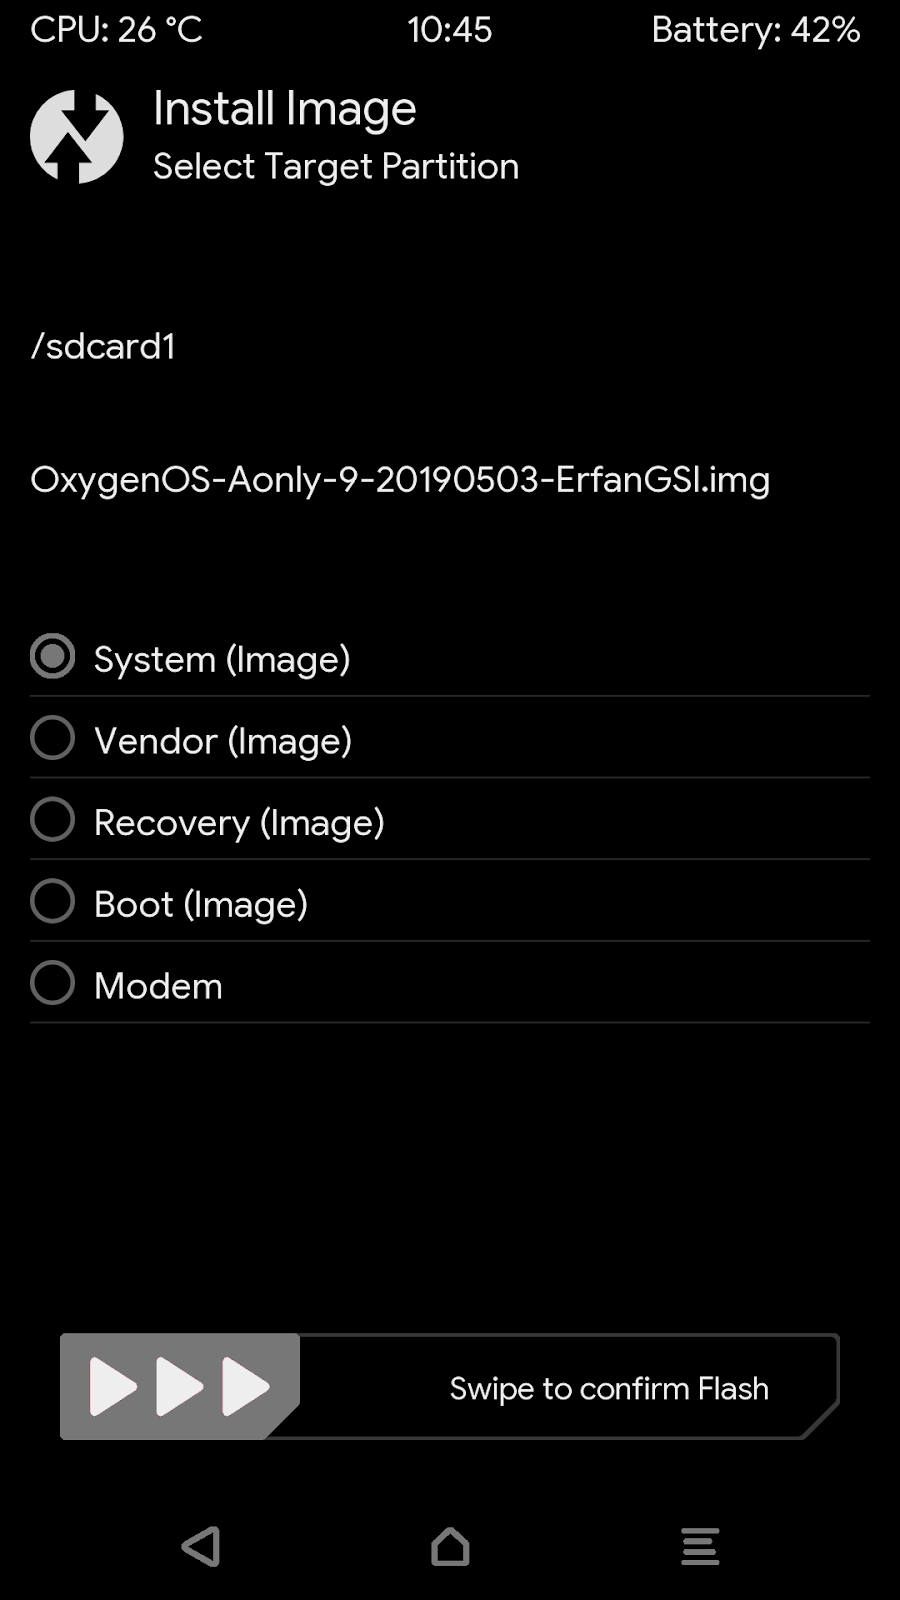 New OxygenOS ErfanGSI Fixed for Mido (Video)